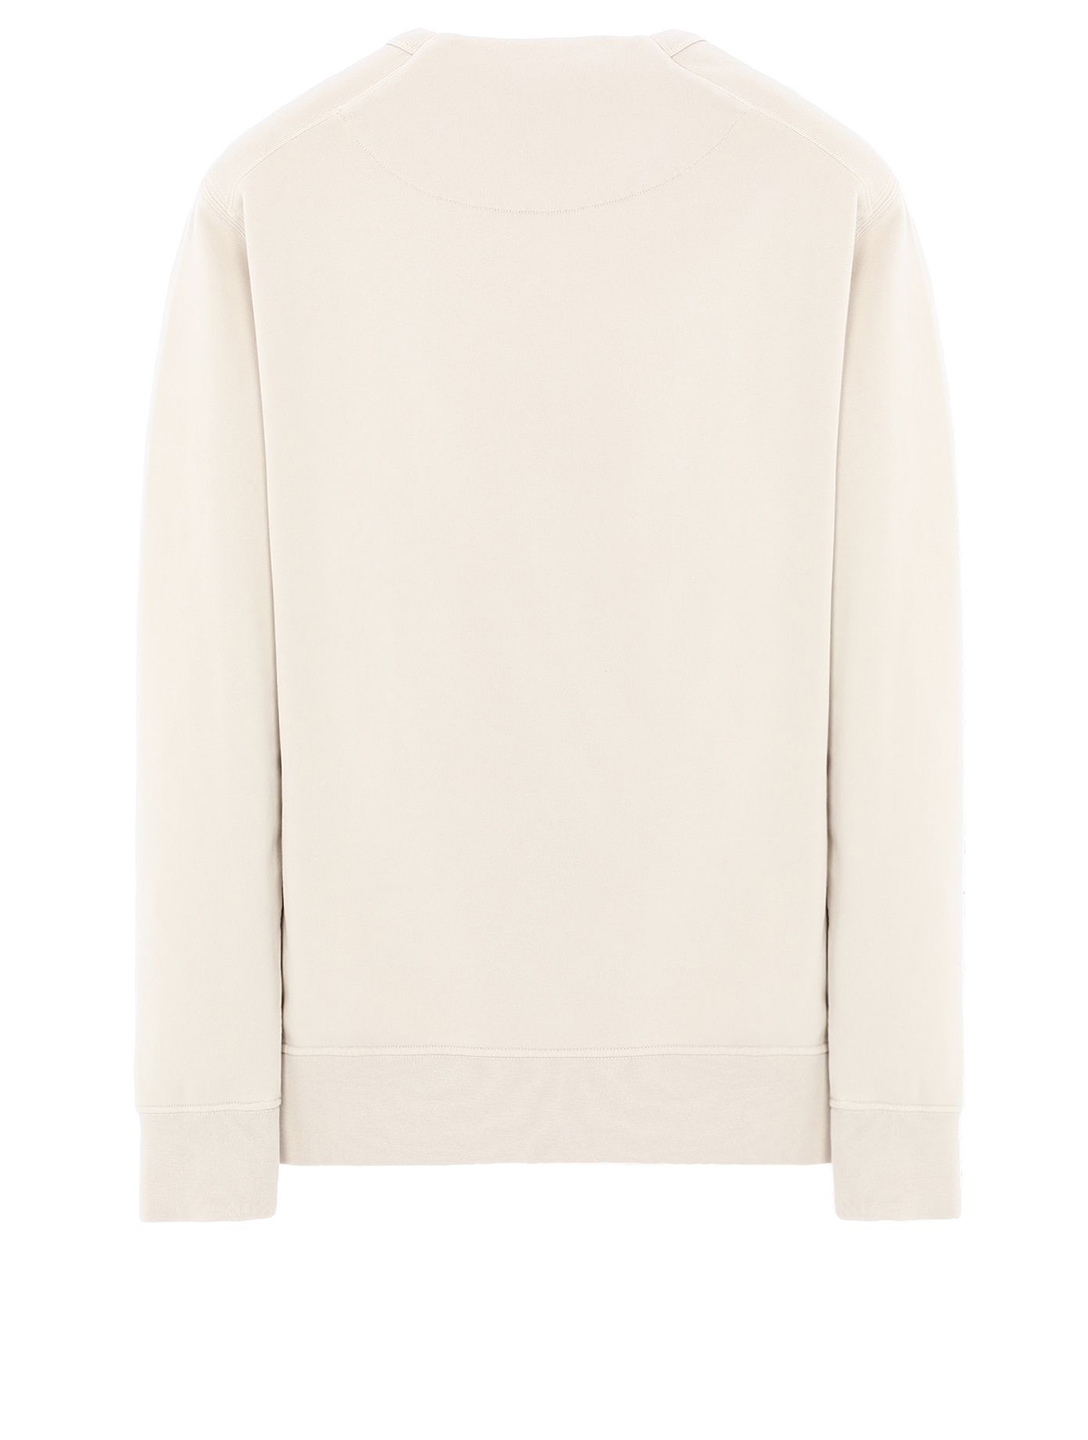 STONE ISLAND Cotton Fleece Sweater Men's Beige